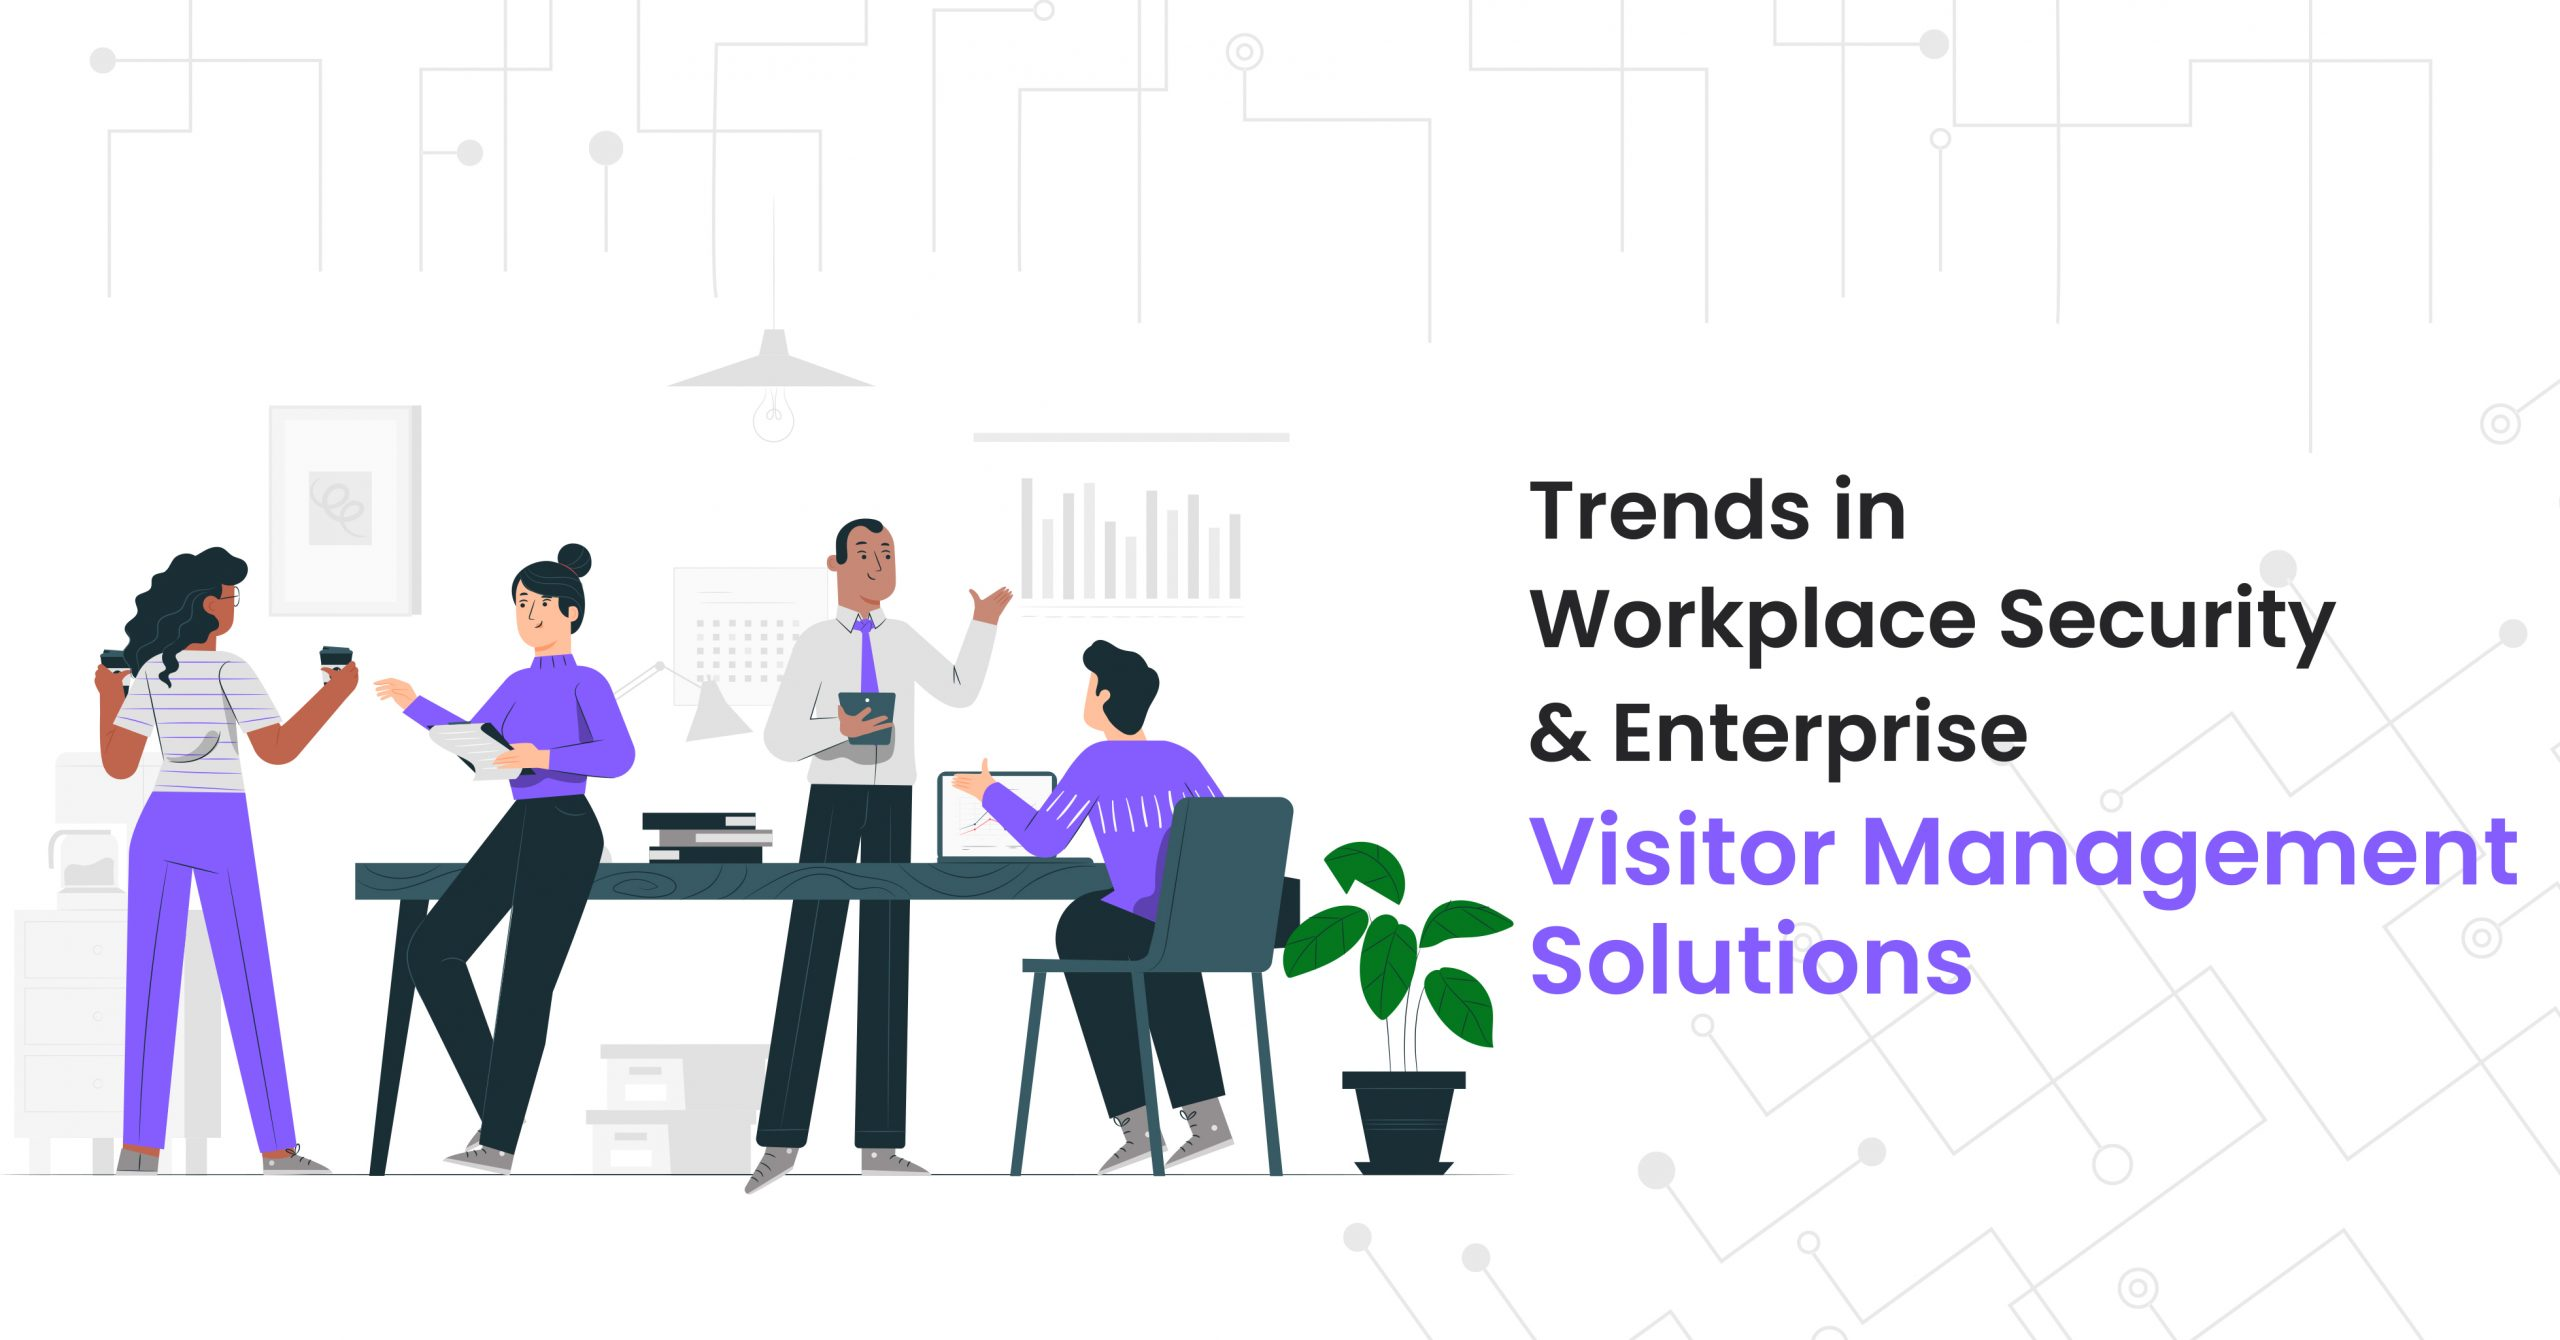 Trends in Workplace Security and Enterprise Visitor Management Solutions